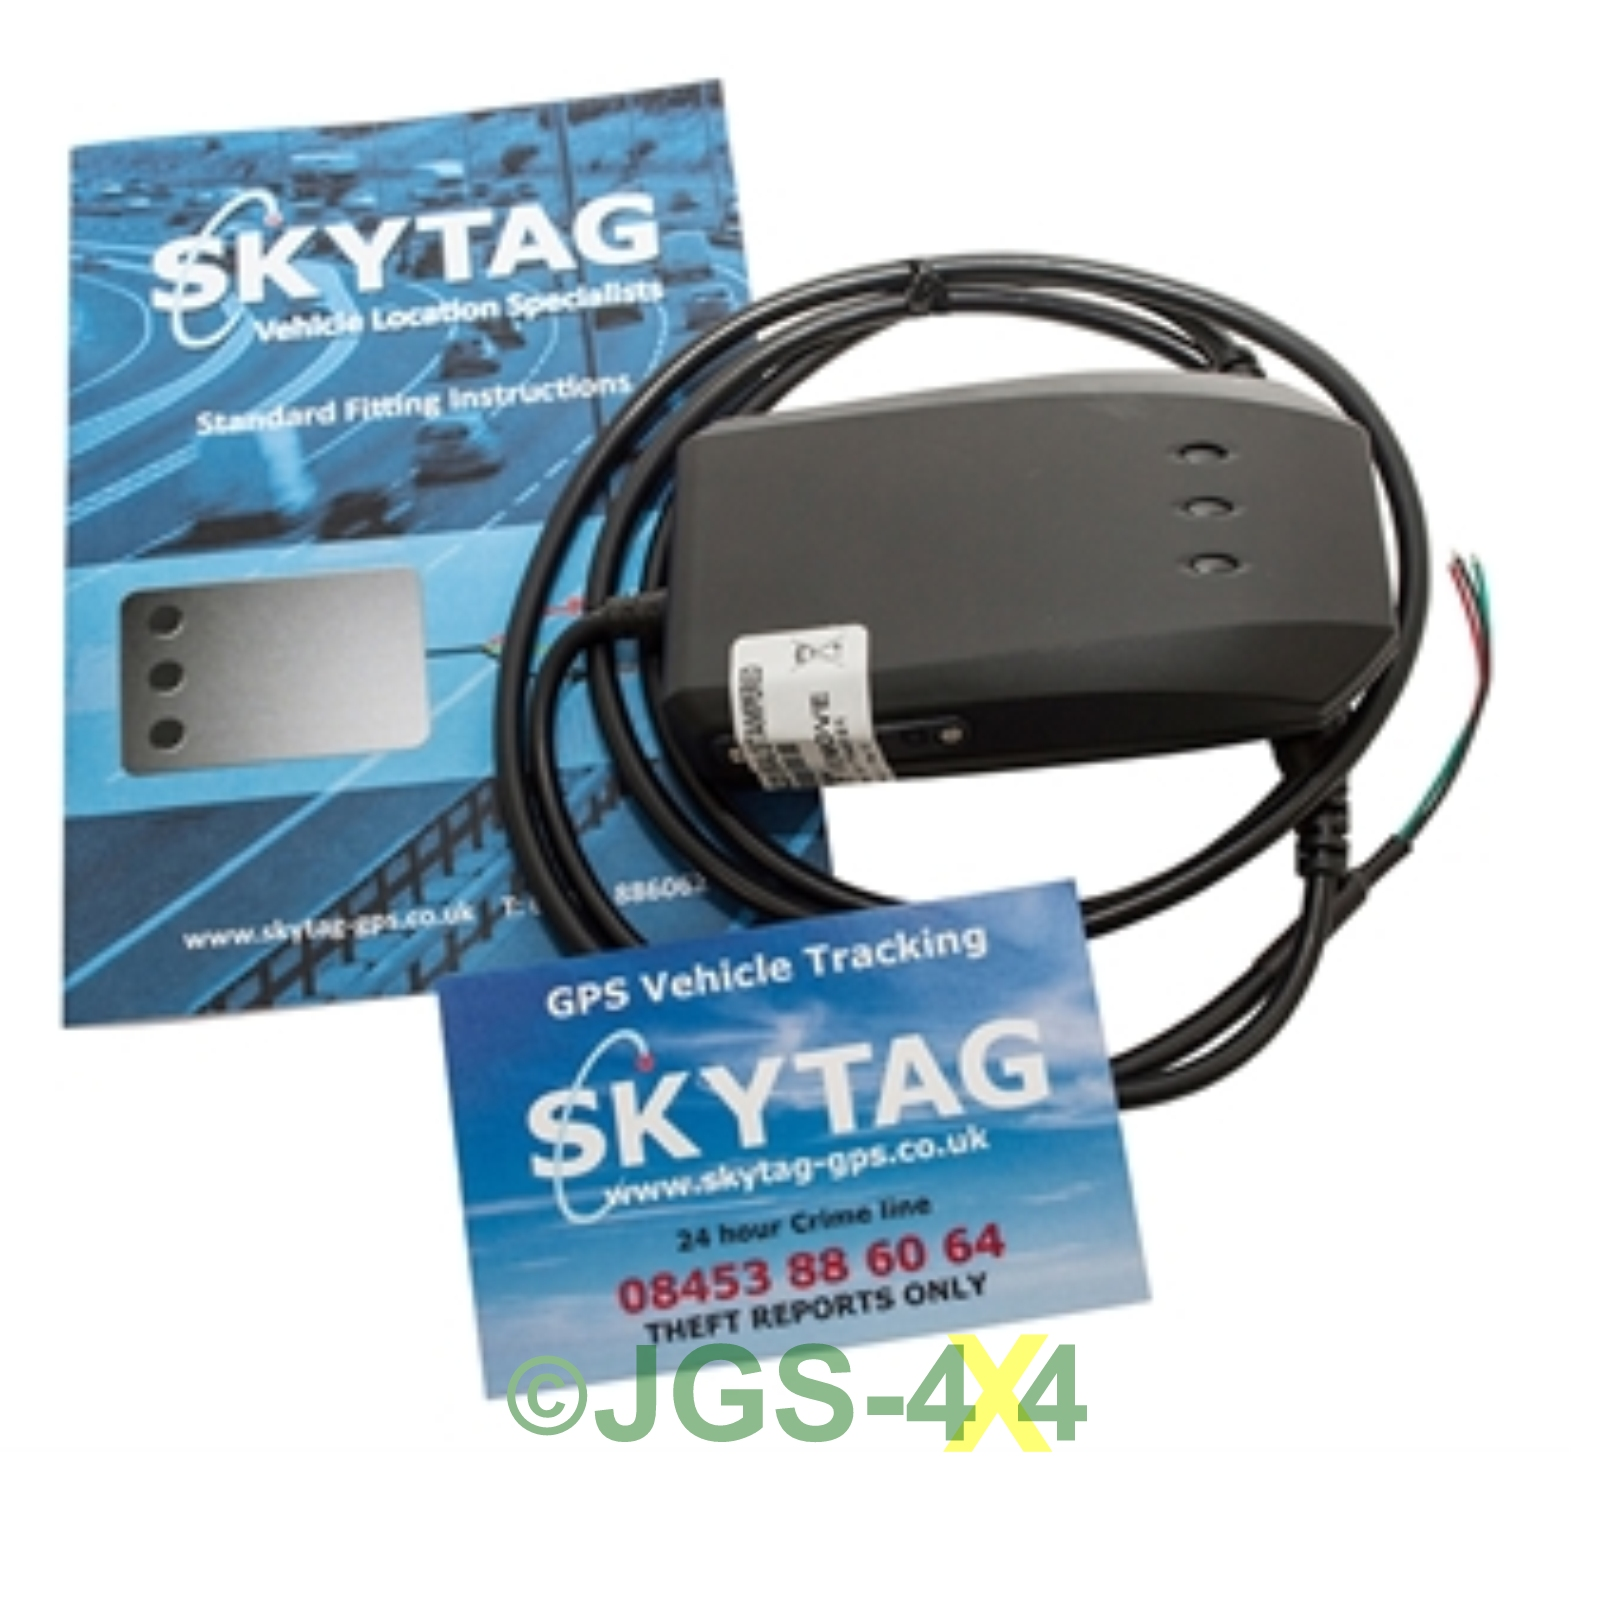 Protect Your Valuable The Land Rover The Tractor The Caravan The Classic Car The Sports Car Etc With Skytag Tracking System